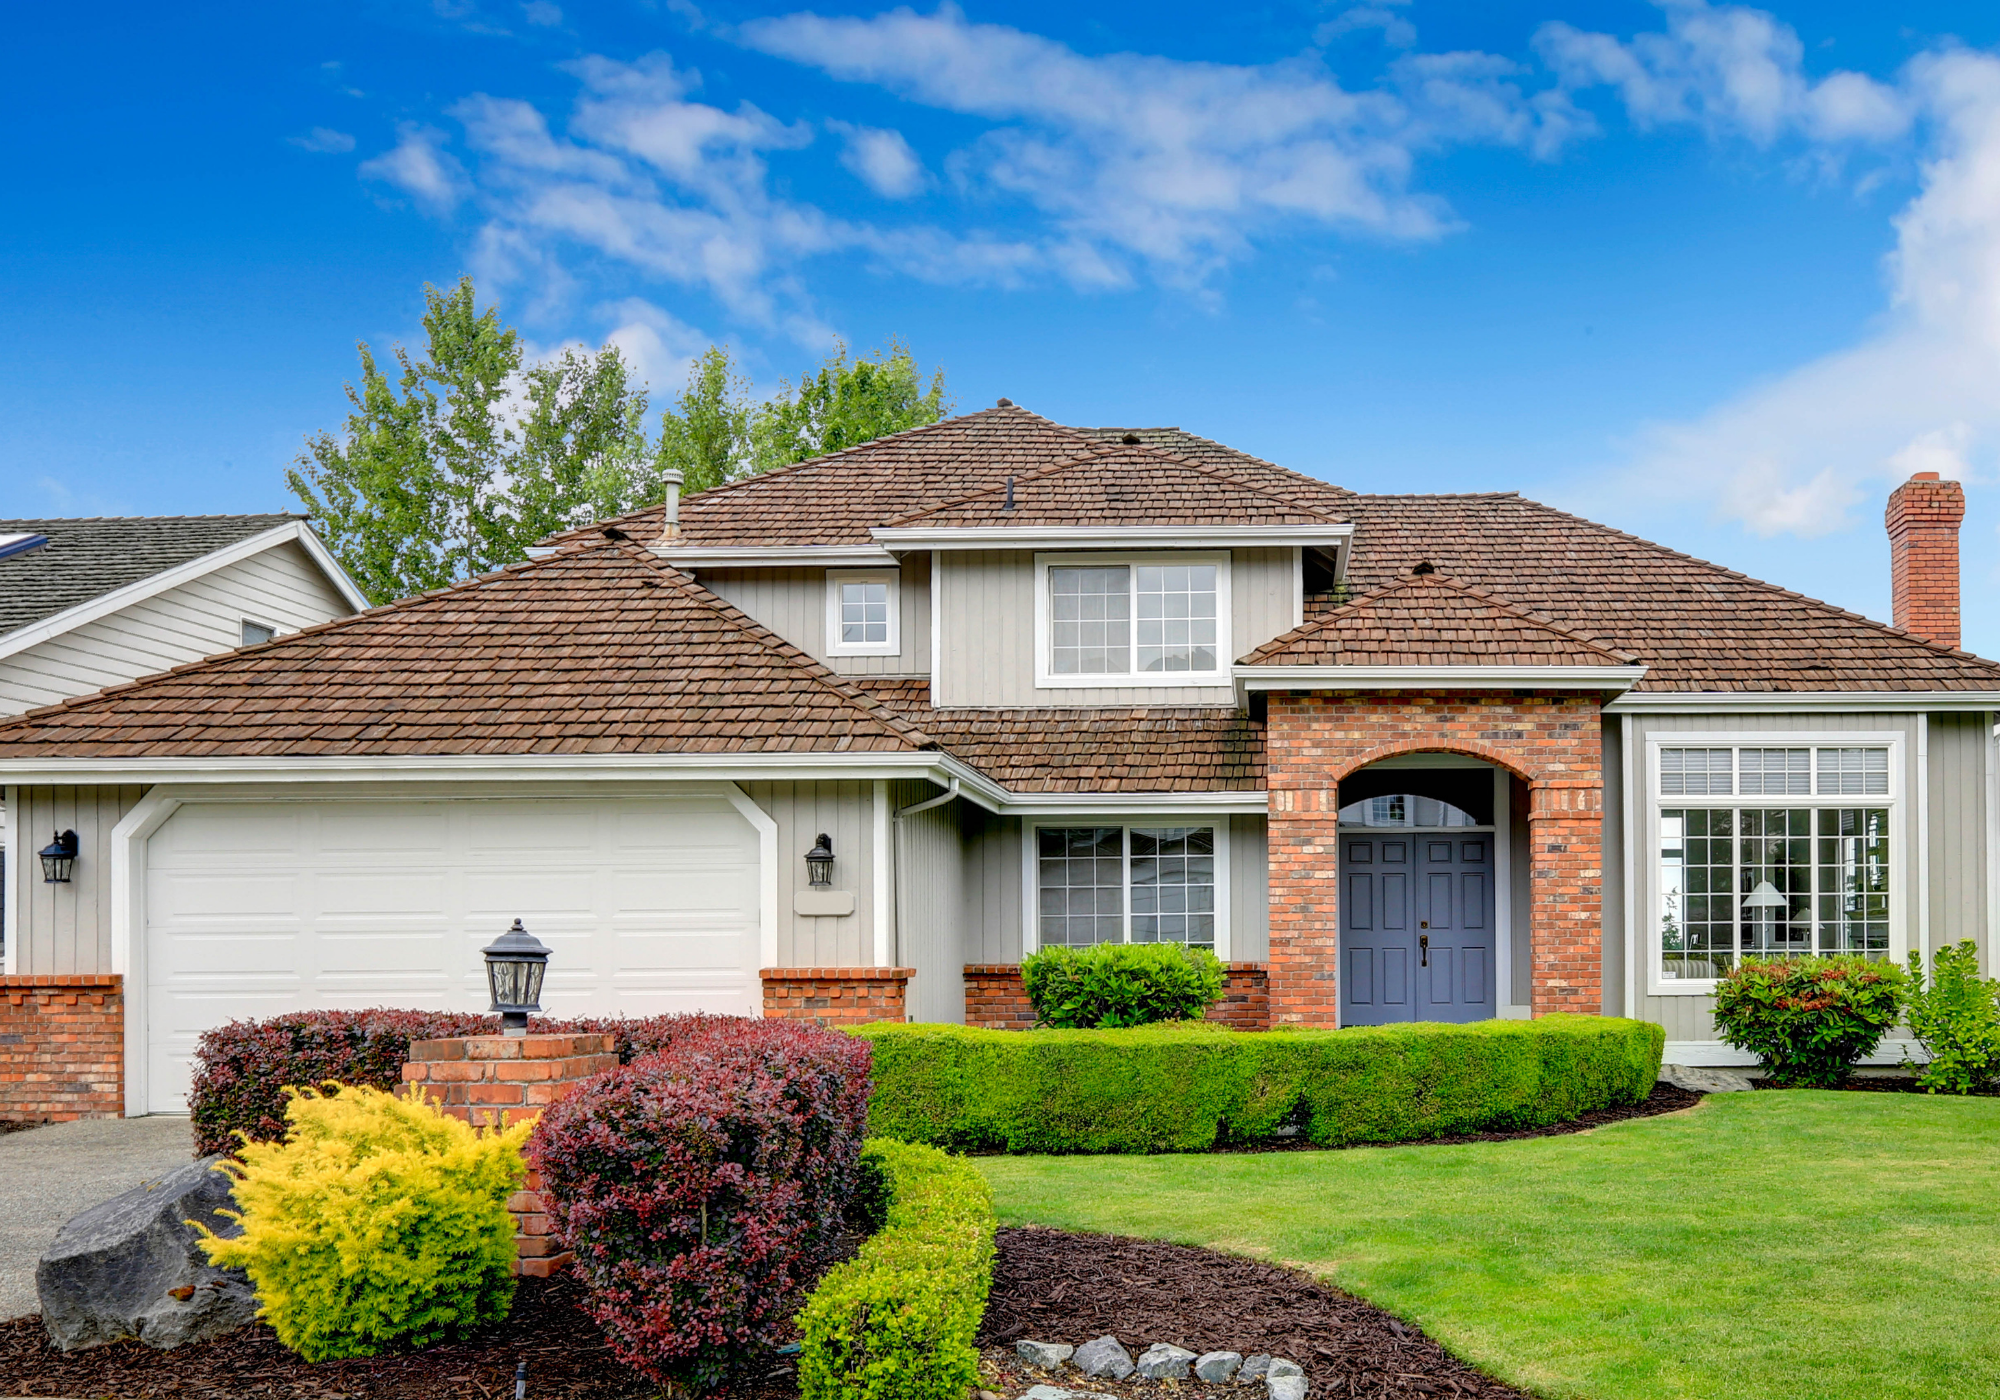 hamilton landscaping residential house lawn